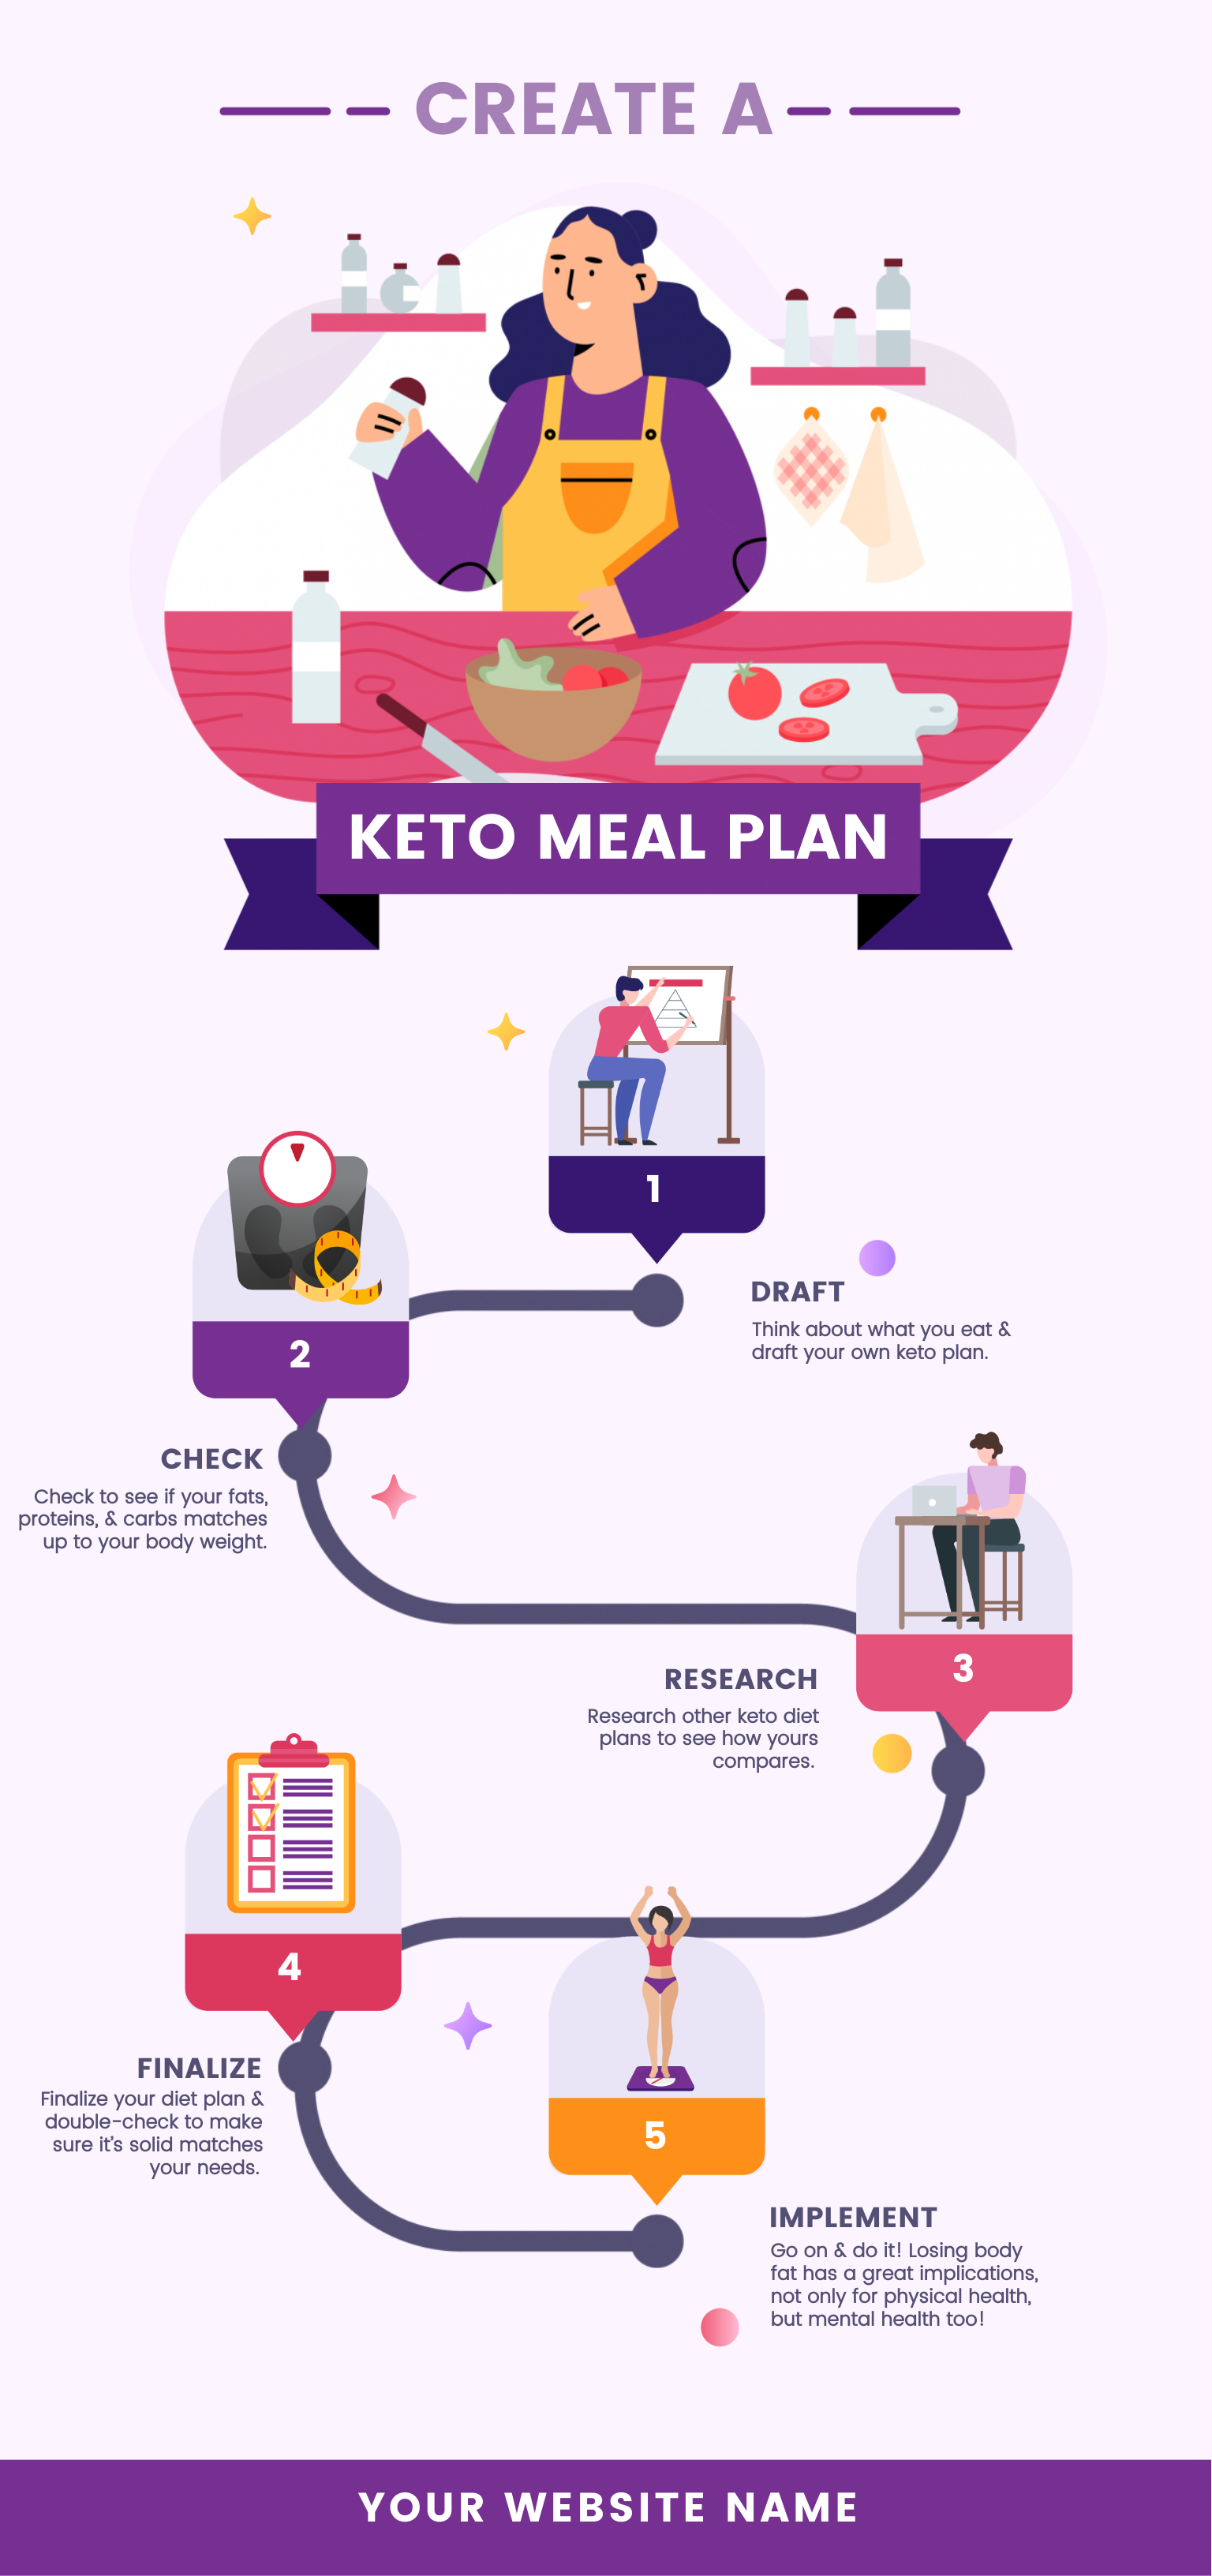 an infographic about keto meal plan.